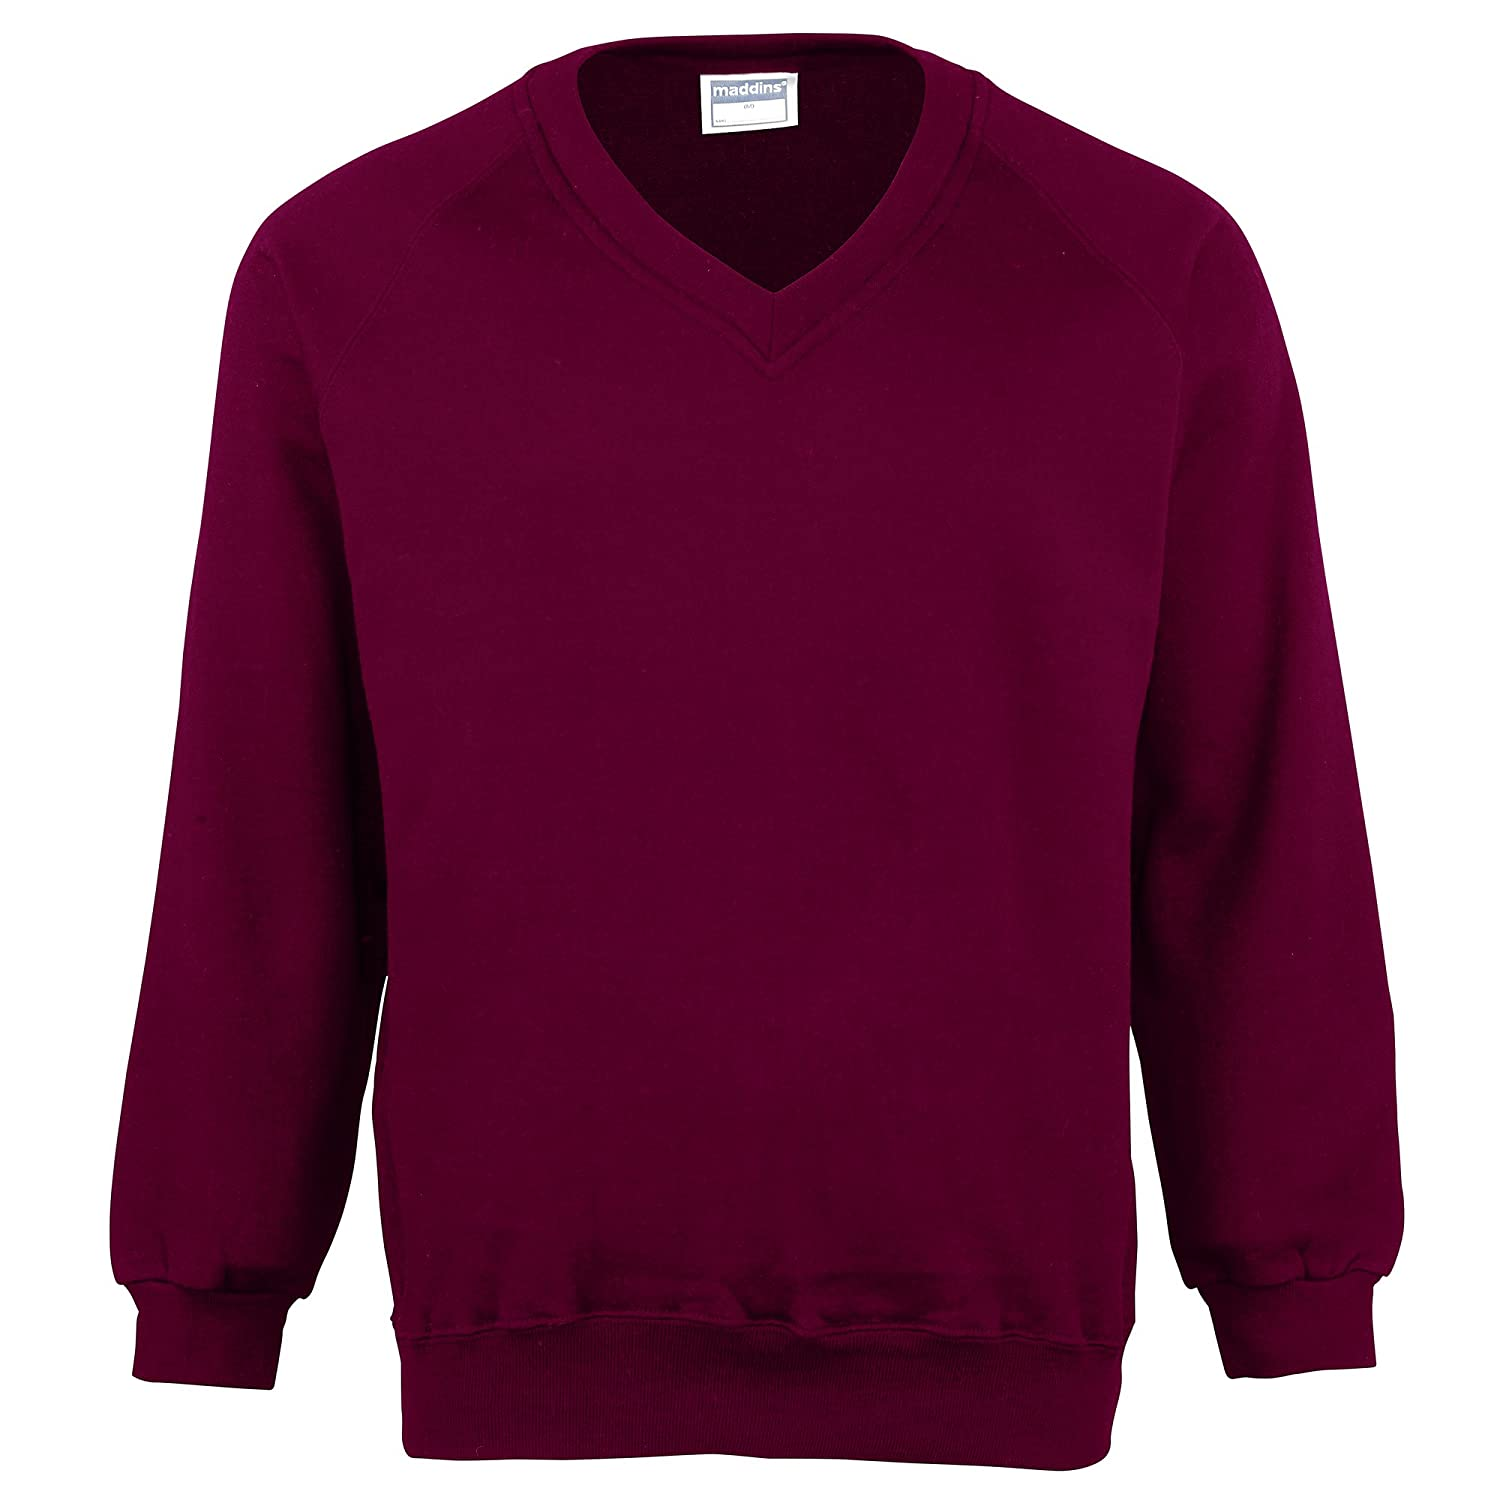 Maddins Men's V-Neck Sweatshirt at Amazon Men's Clothing store ...